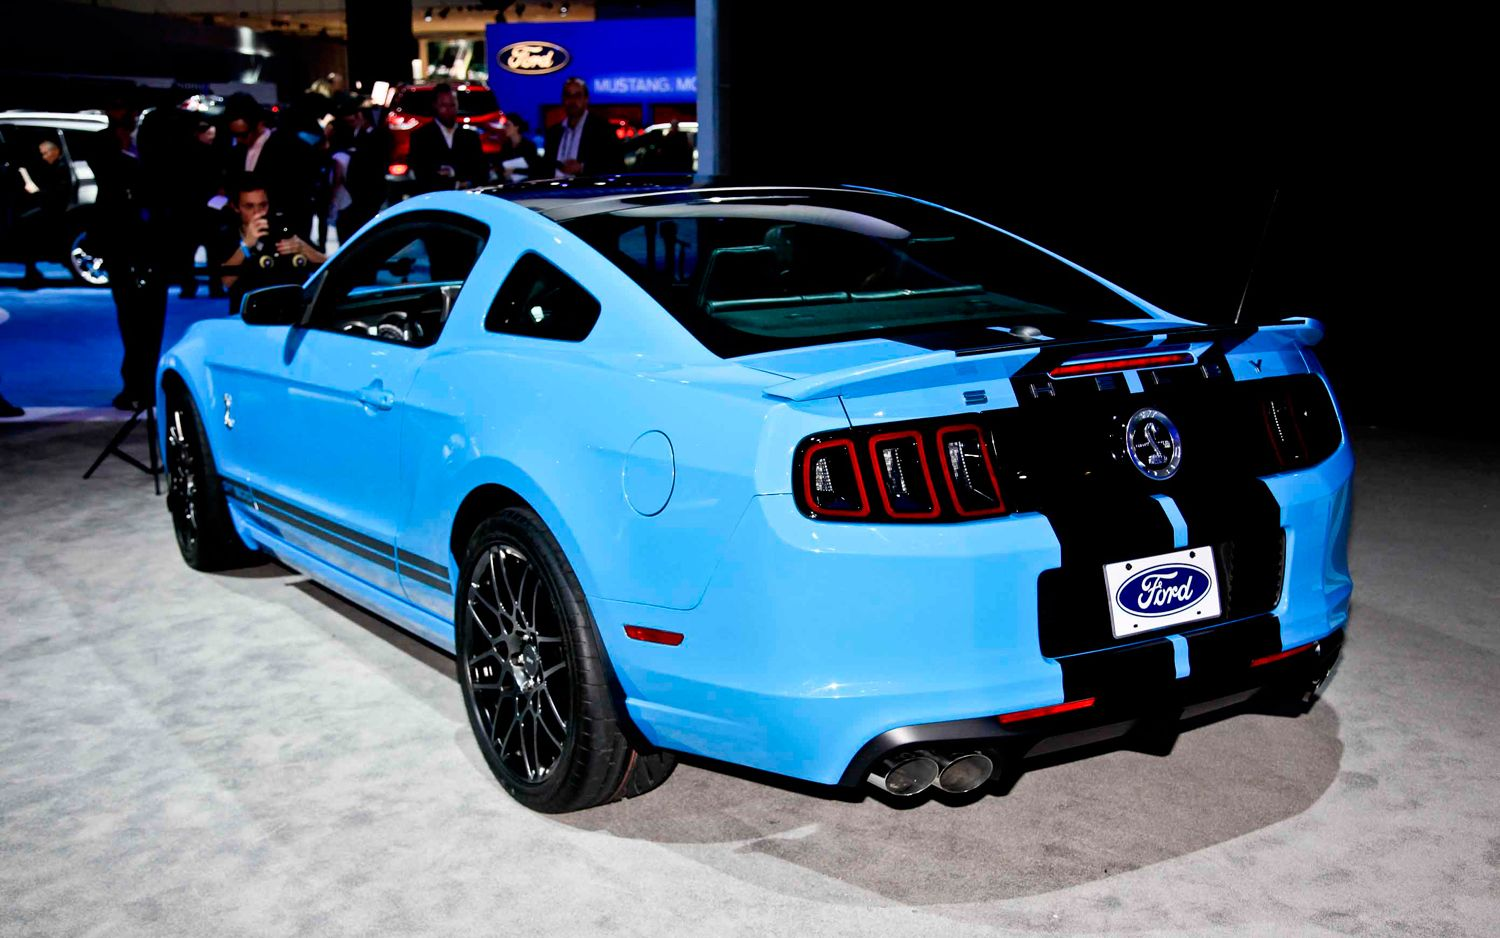 2013 Ford Shelby GT500 wallpapers Mustang News 1500x938